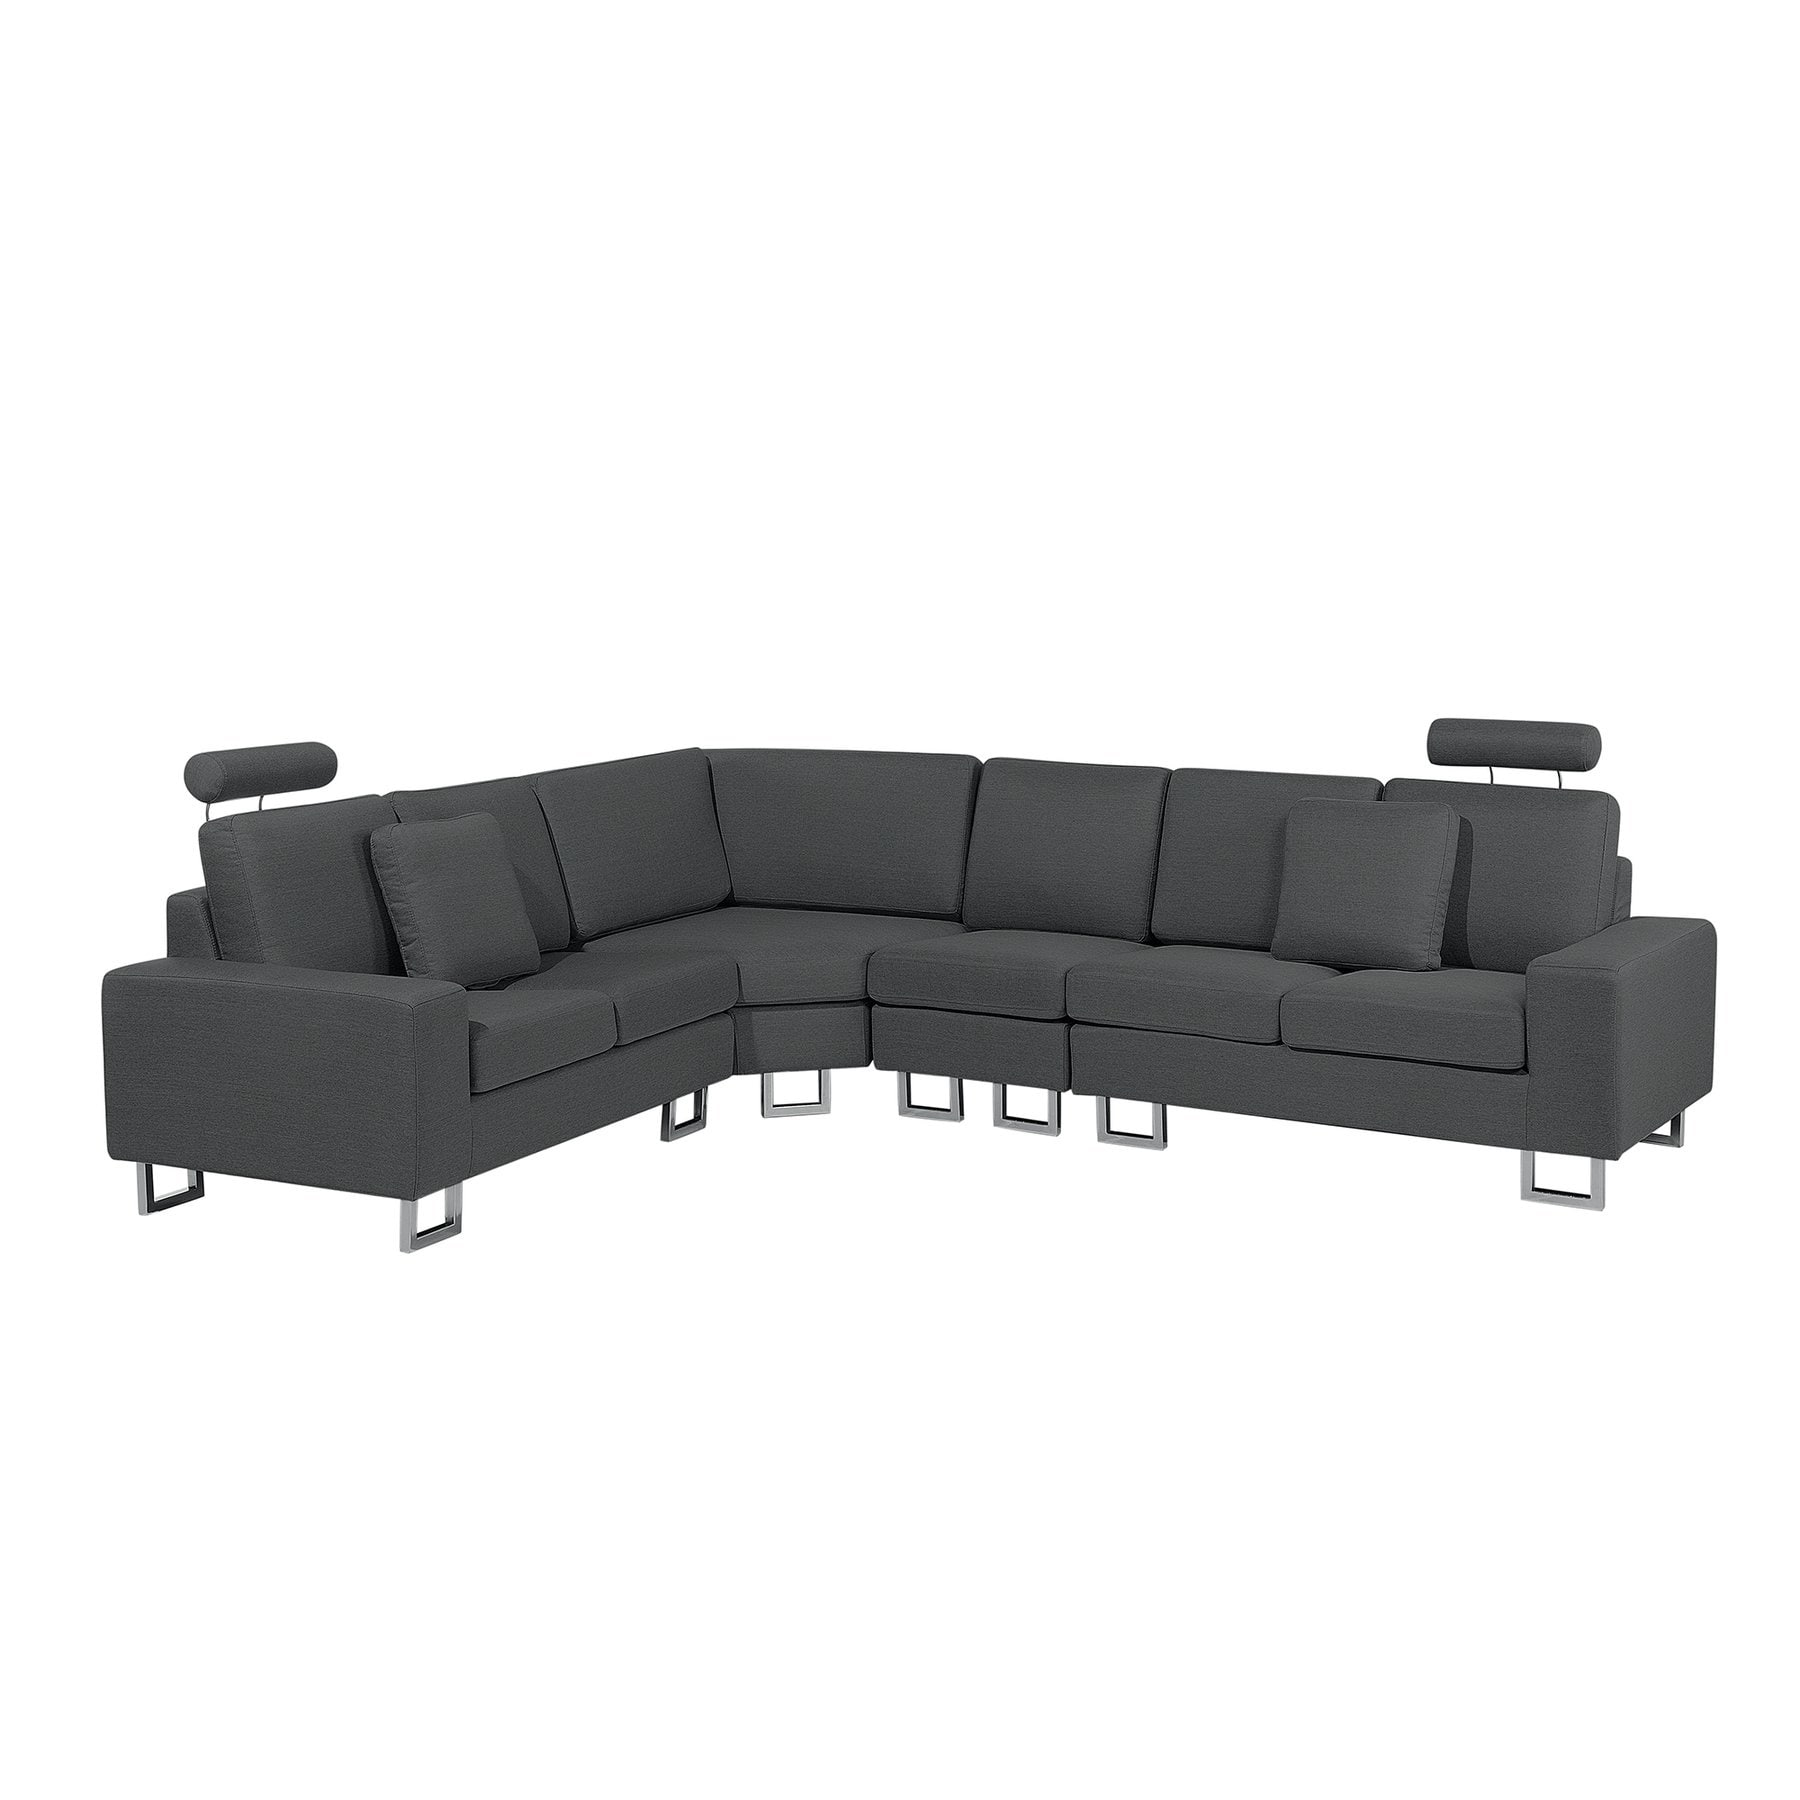 Stockholm Sofa Details About Fabric Sectional Sofa Dark Gray Stockholm